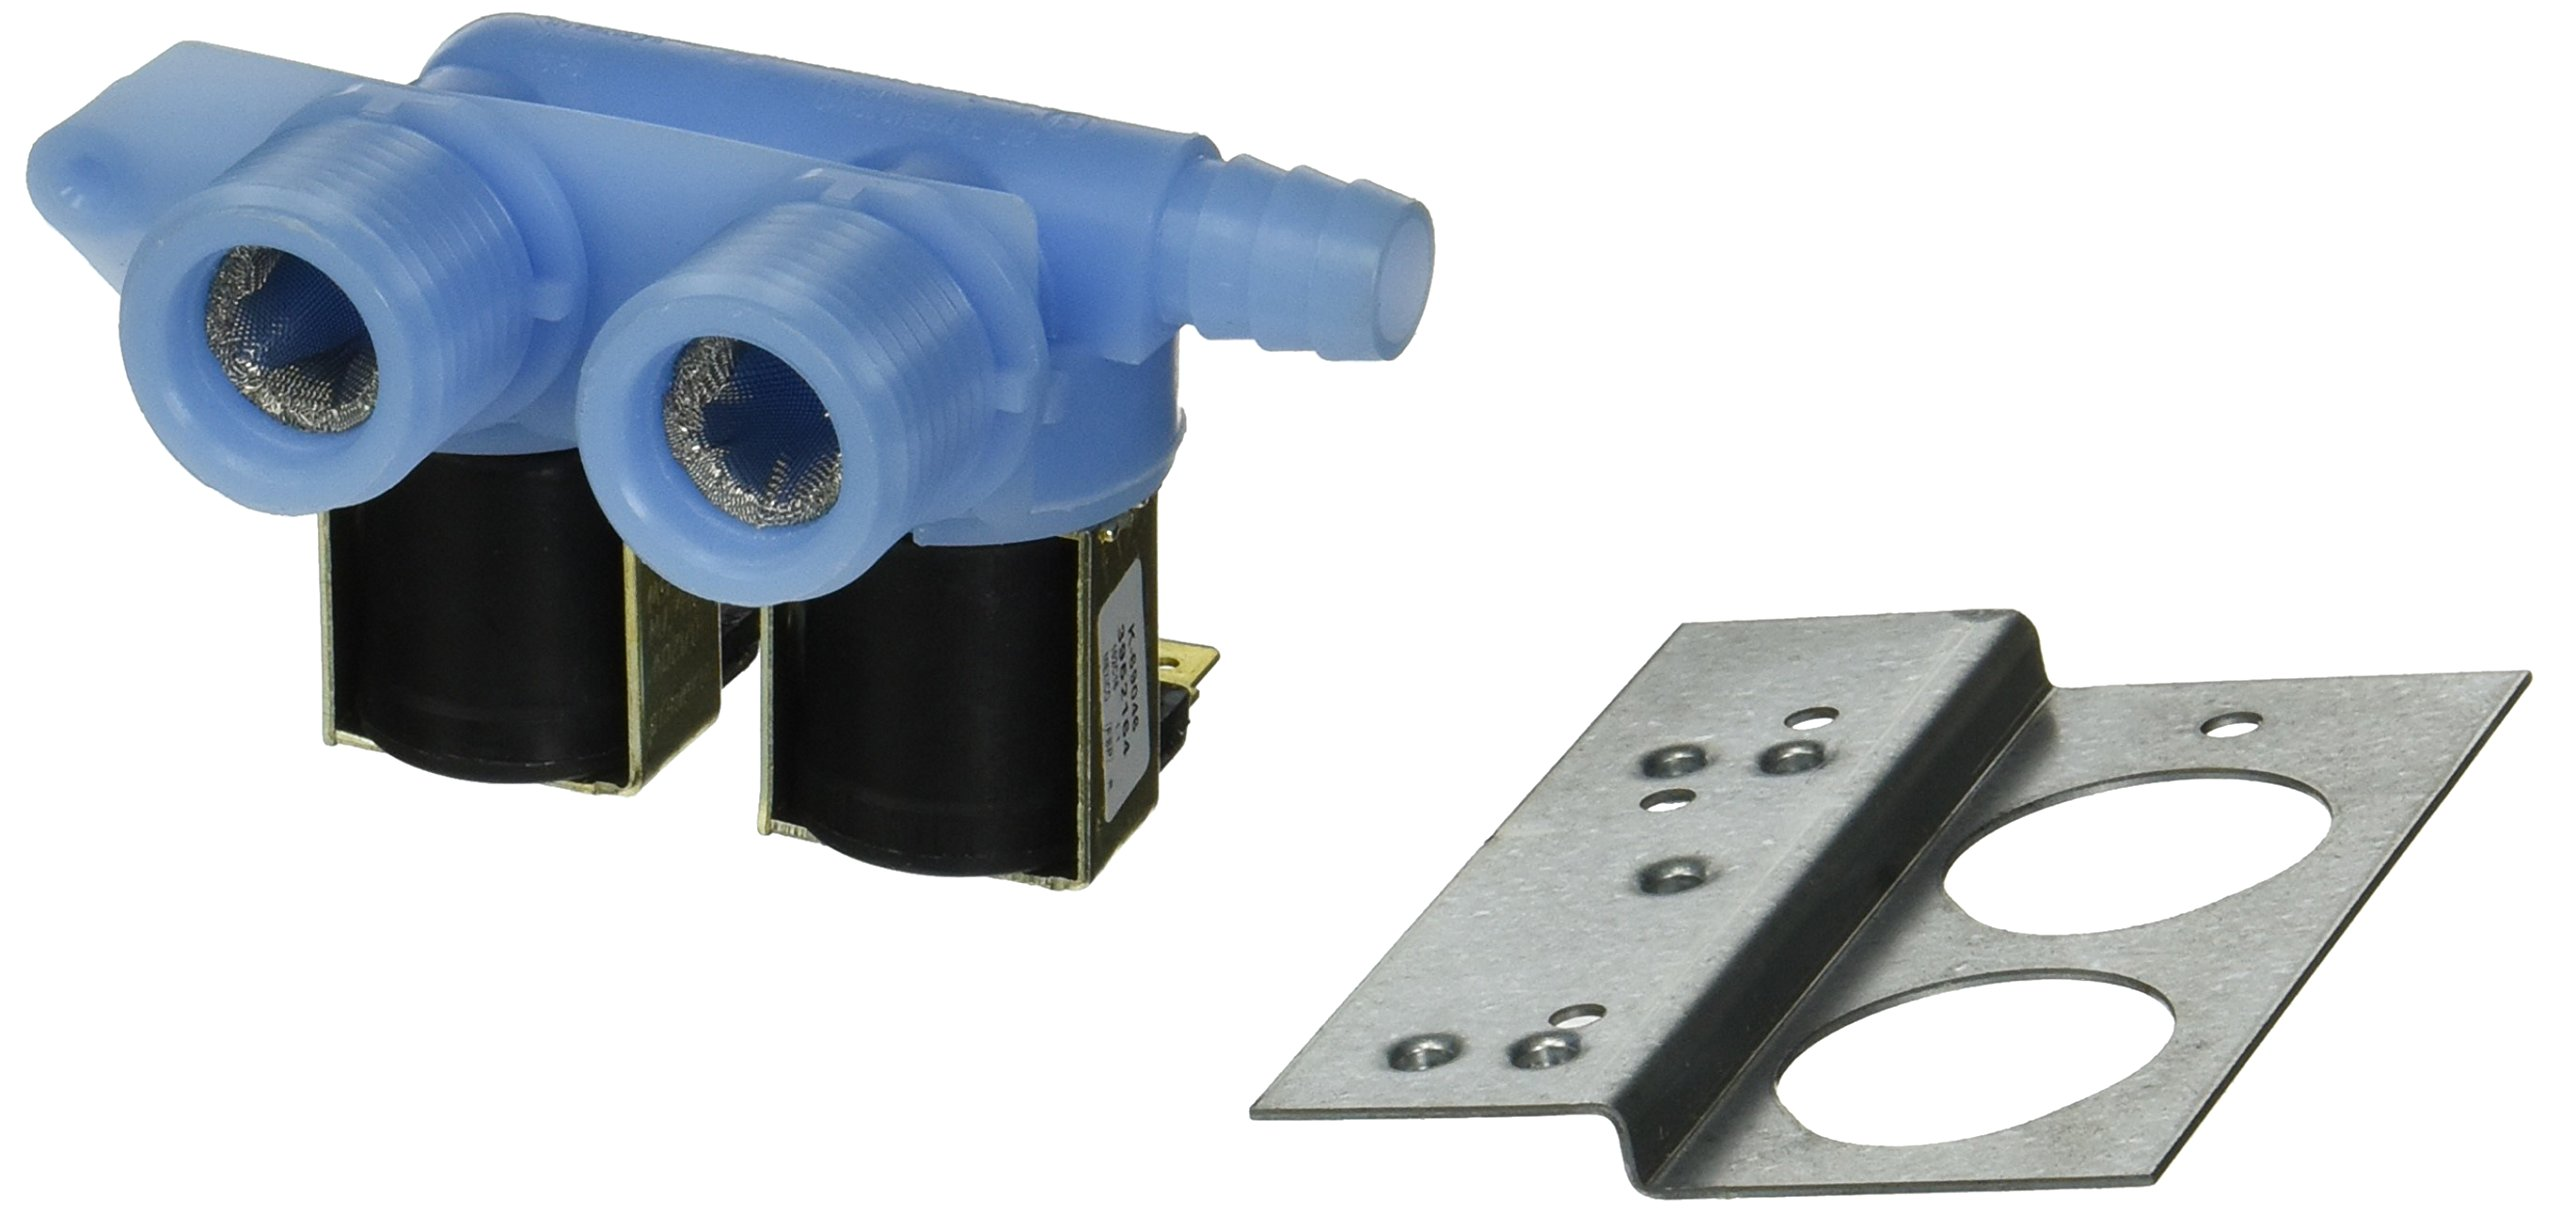 285805 Water Valve - 120 VAC Washer Inlet Valve Kit - Will work with Whirlpool, Maytag, Alliance, Electrolux, GE, Kenmore, Amana, Admiral, Frigidaire by Maytag (Image #1)